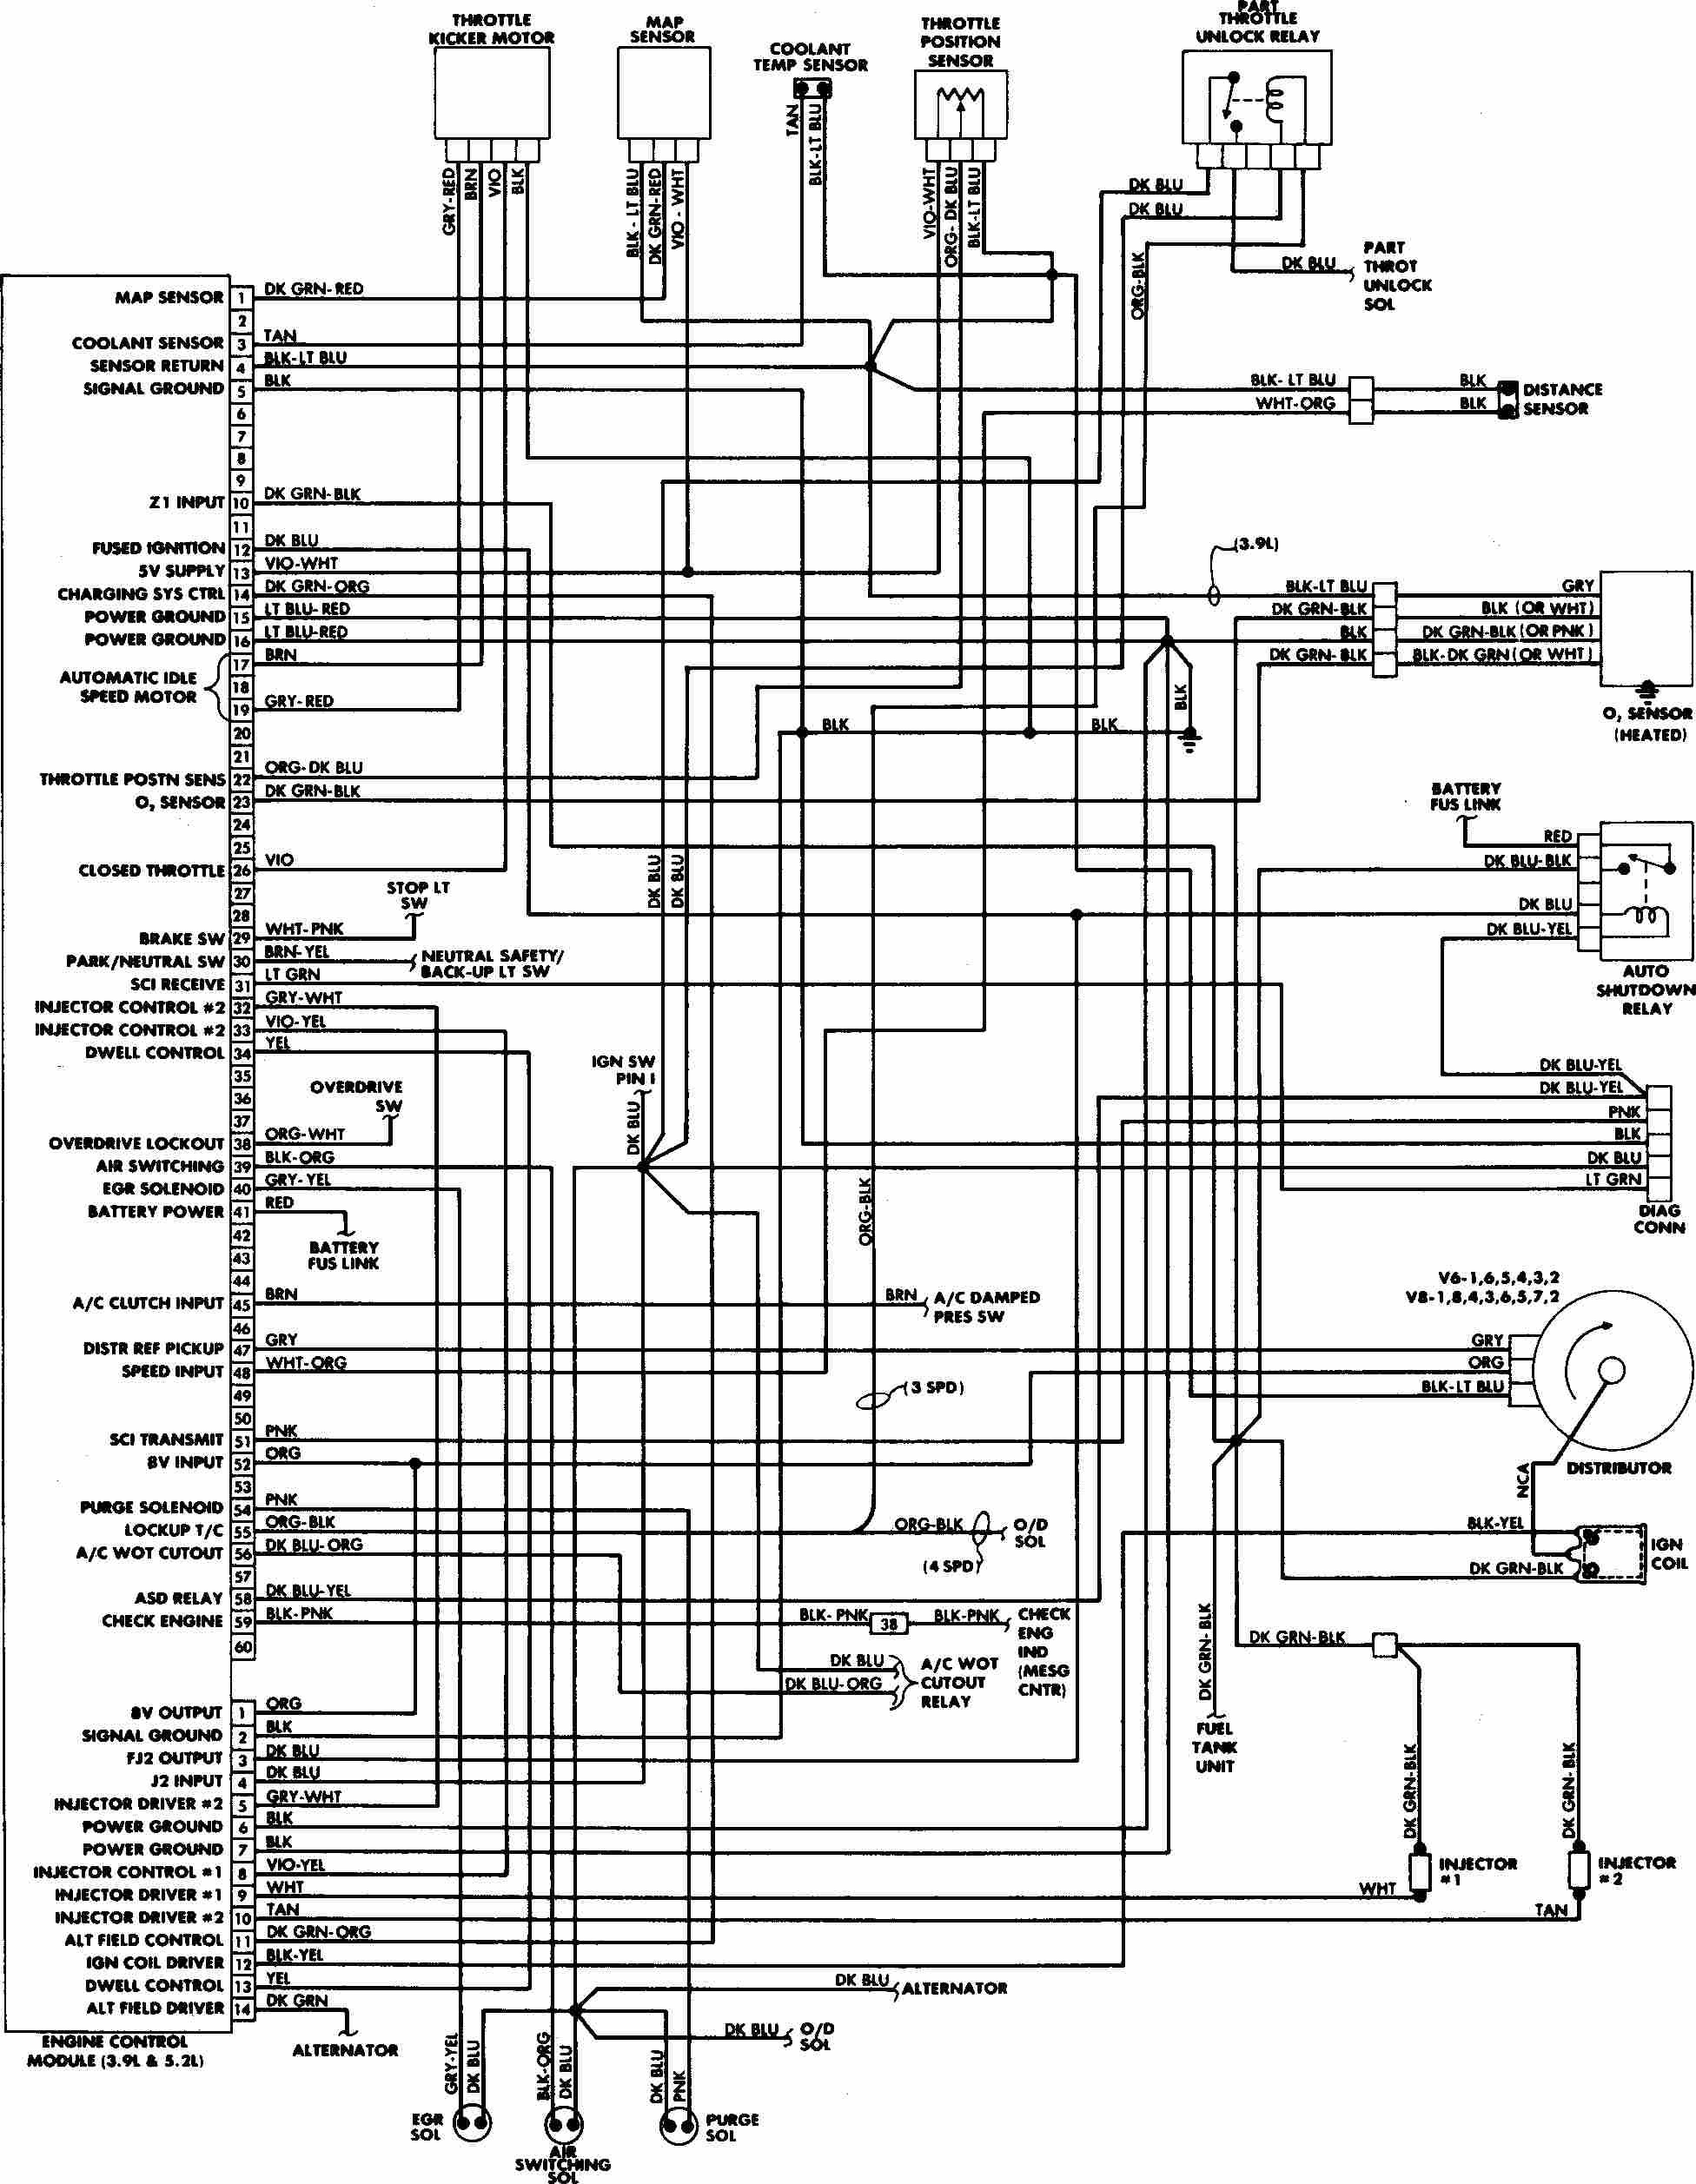 Engine Control Wiring Diagram Of 1988 Dodge W100